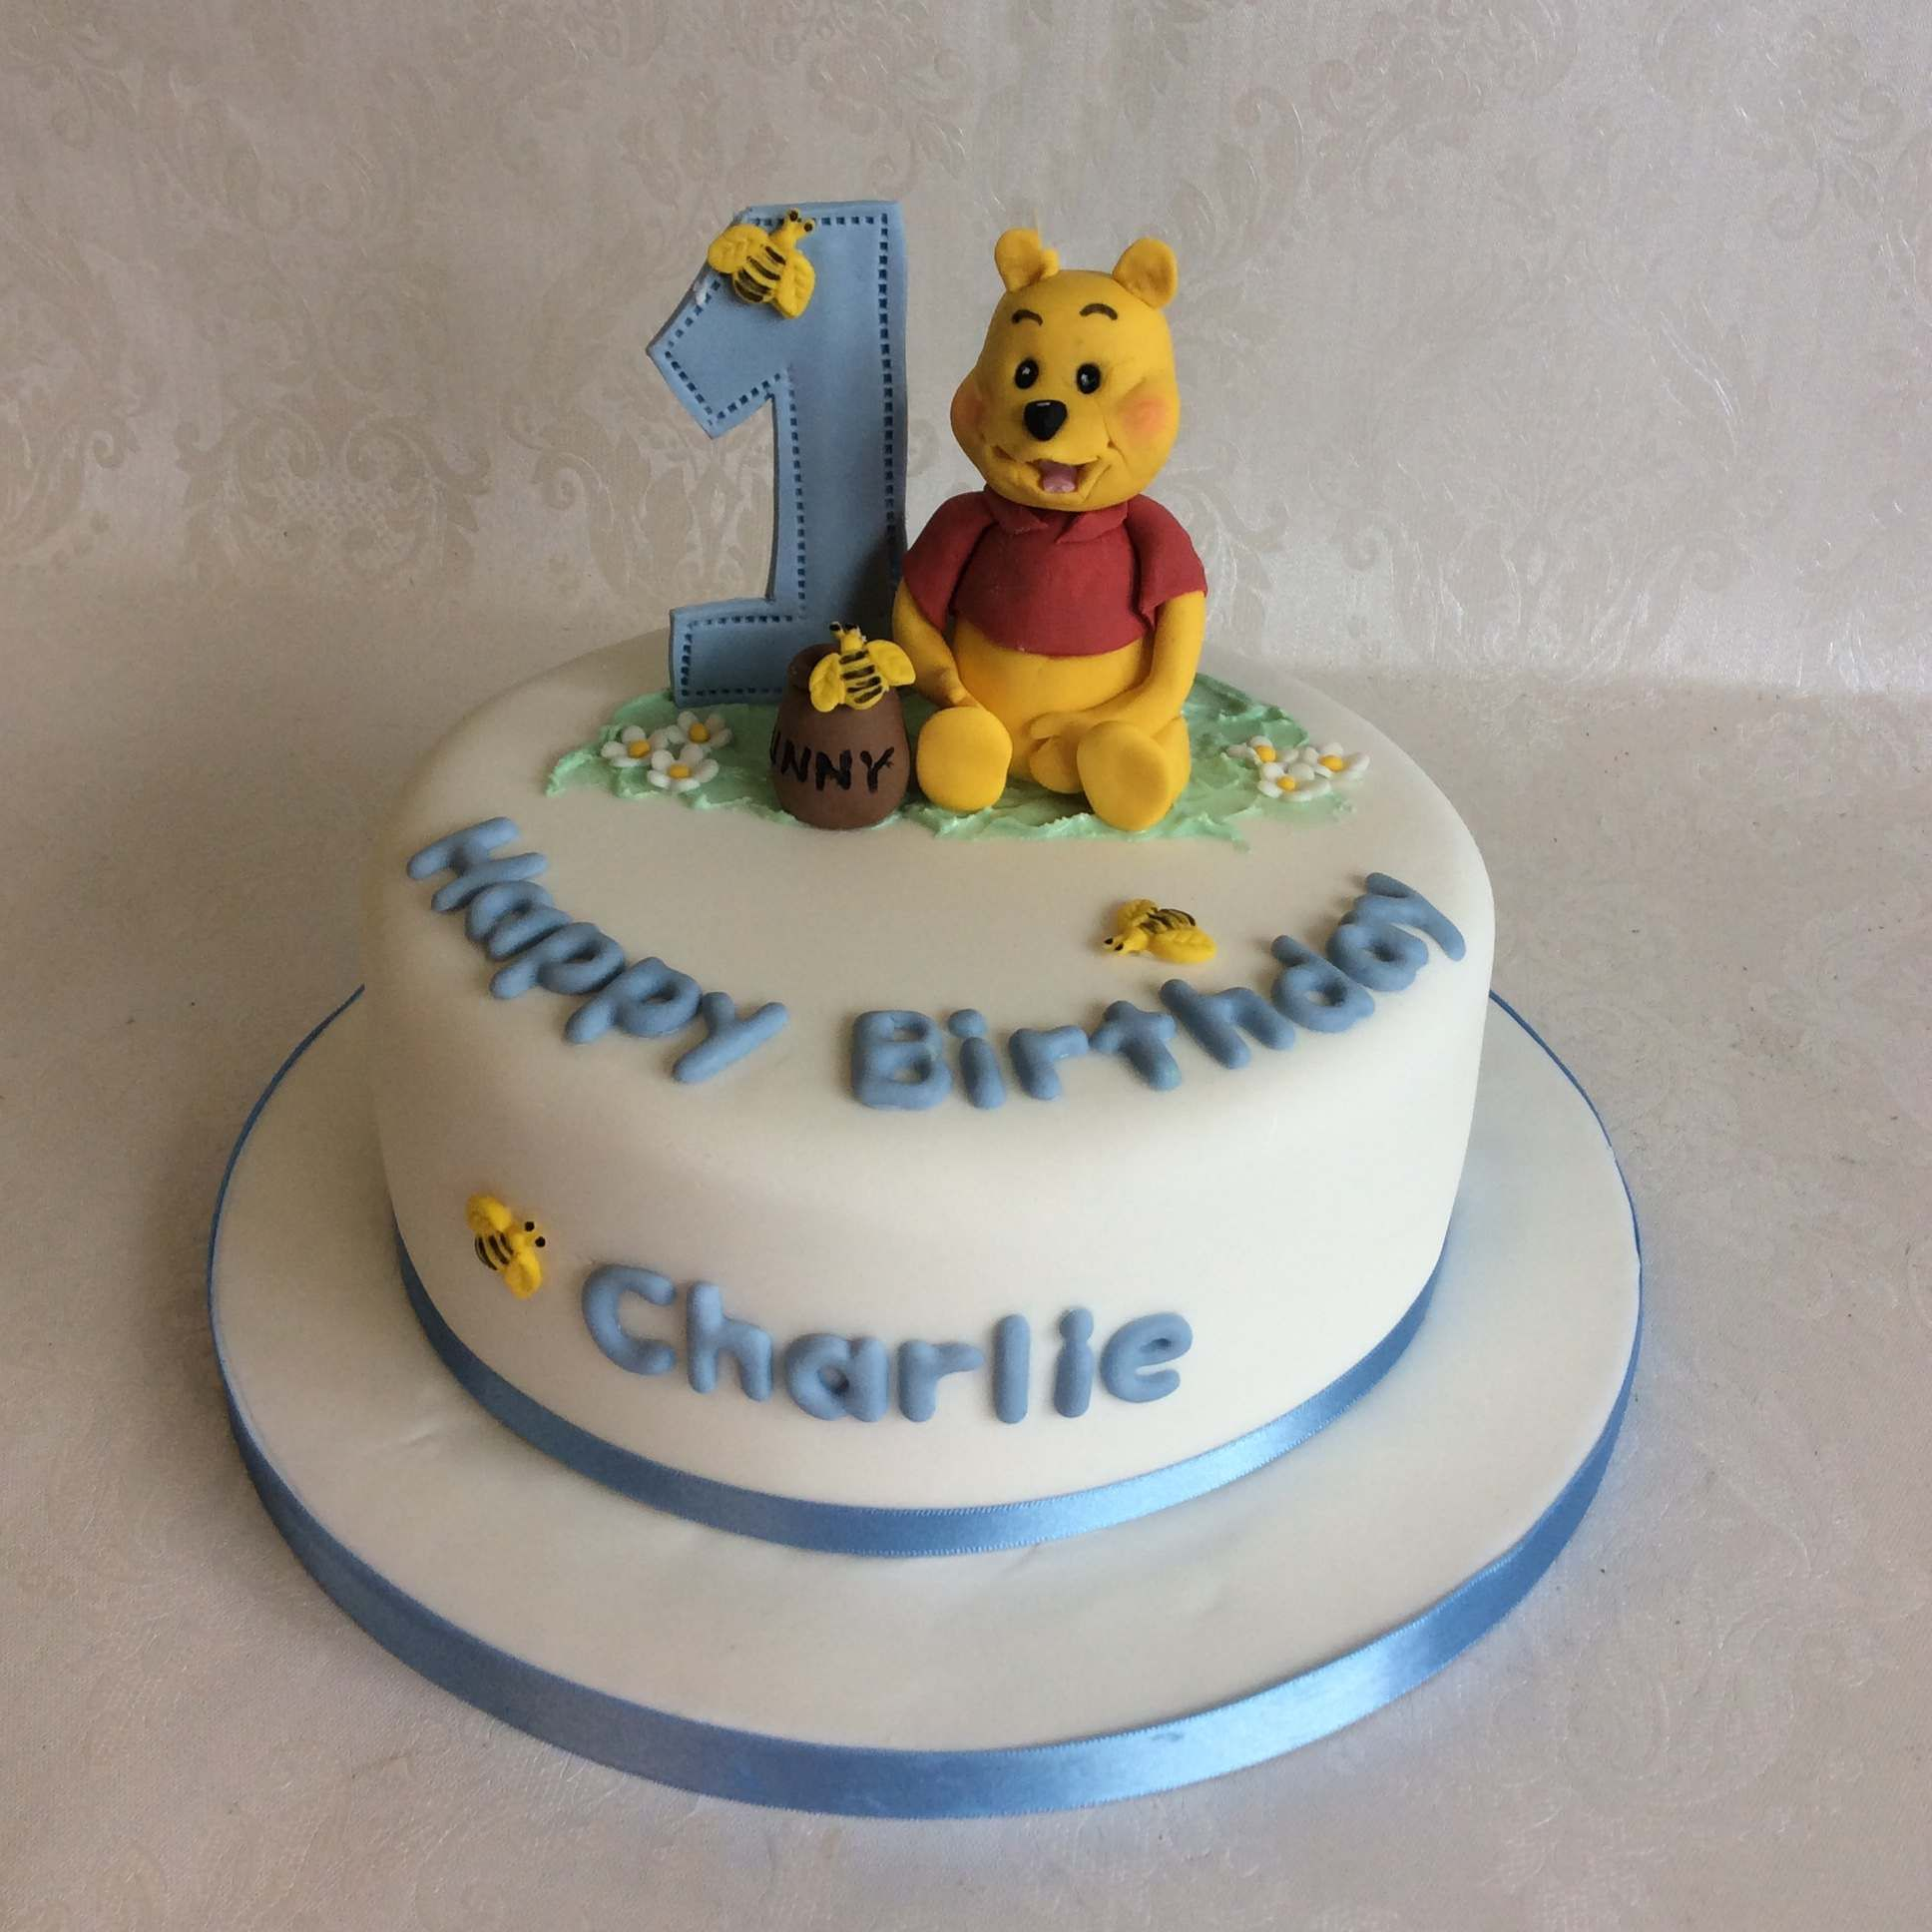 Simple Winnie cake for a little boy's 1st birthday